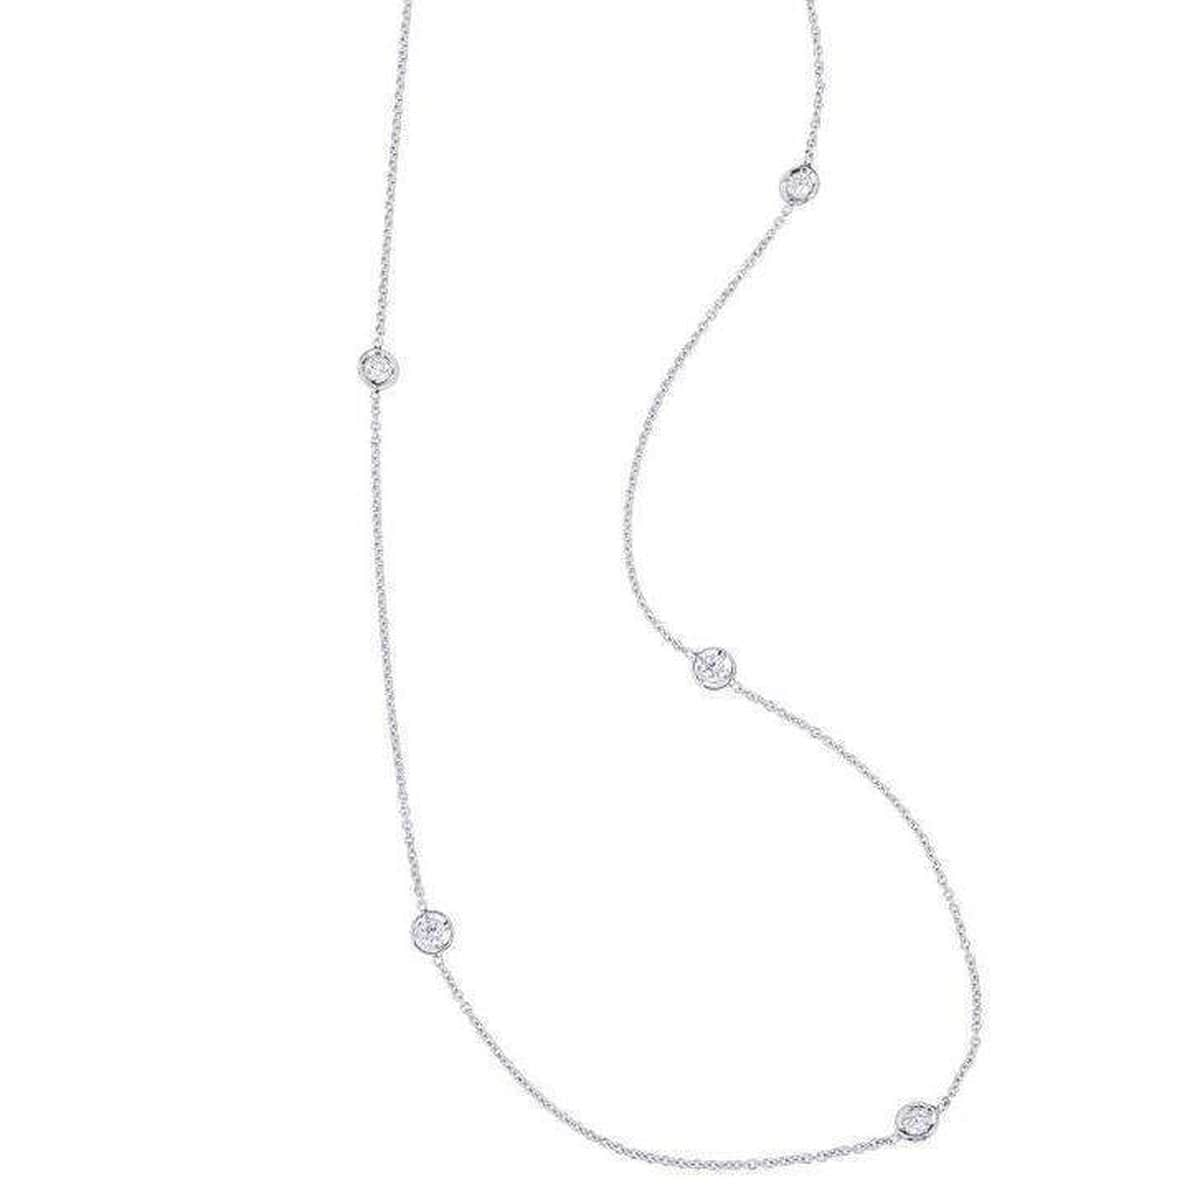 18k White Gold & Diamond 5 Station Necklace - 001316AWCHD0-Roberto Coin-Renee Taylor Gallery